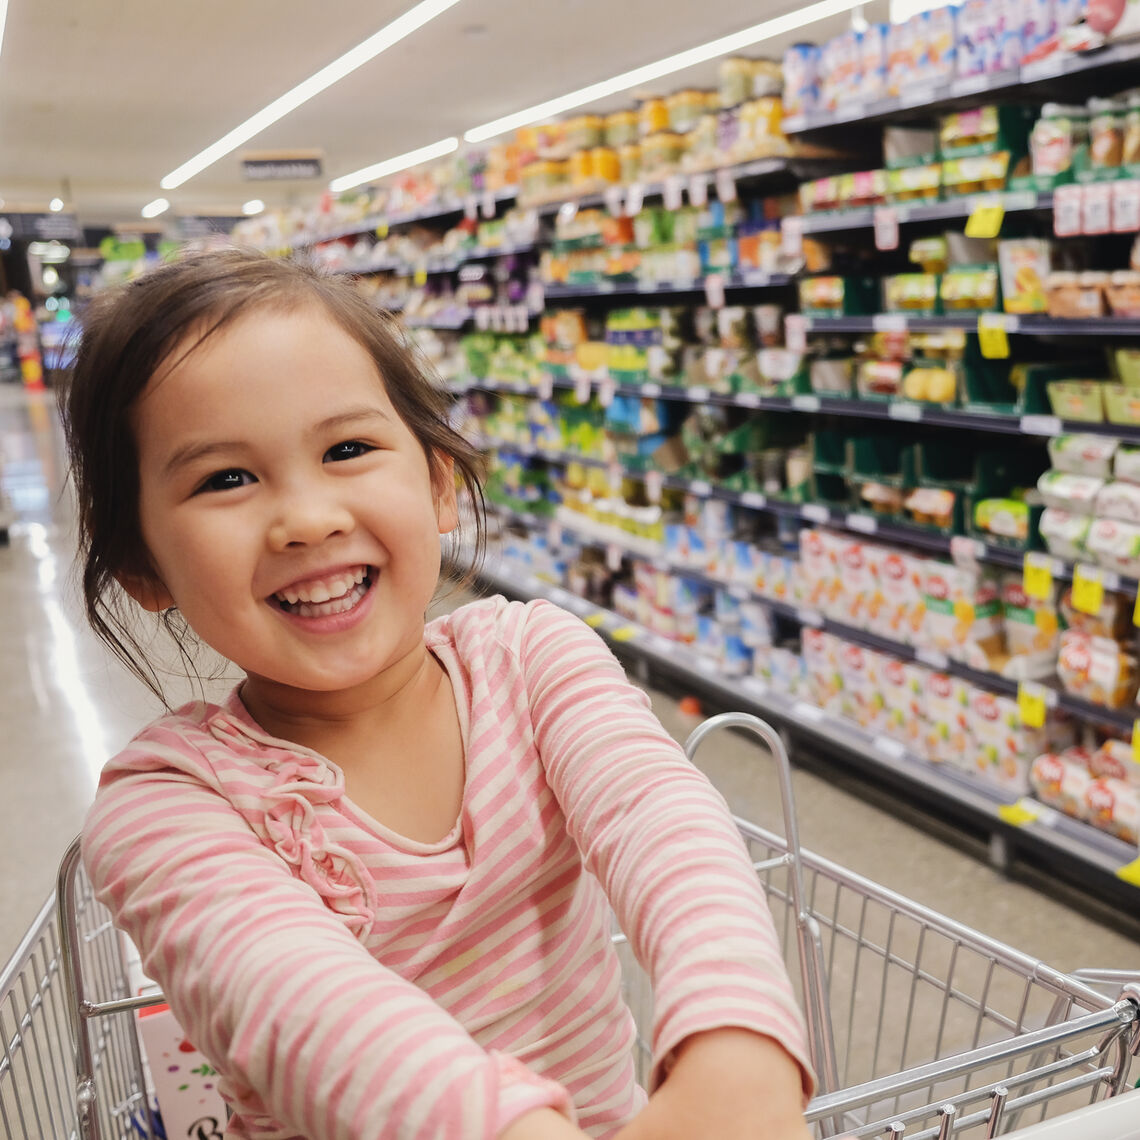 Happy little multiethnic girl sitting in a trolley, shopping cart at supermarket, grocery store